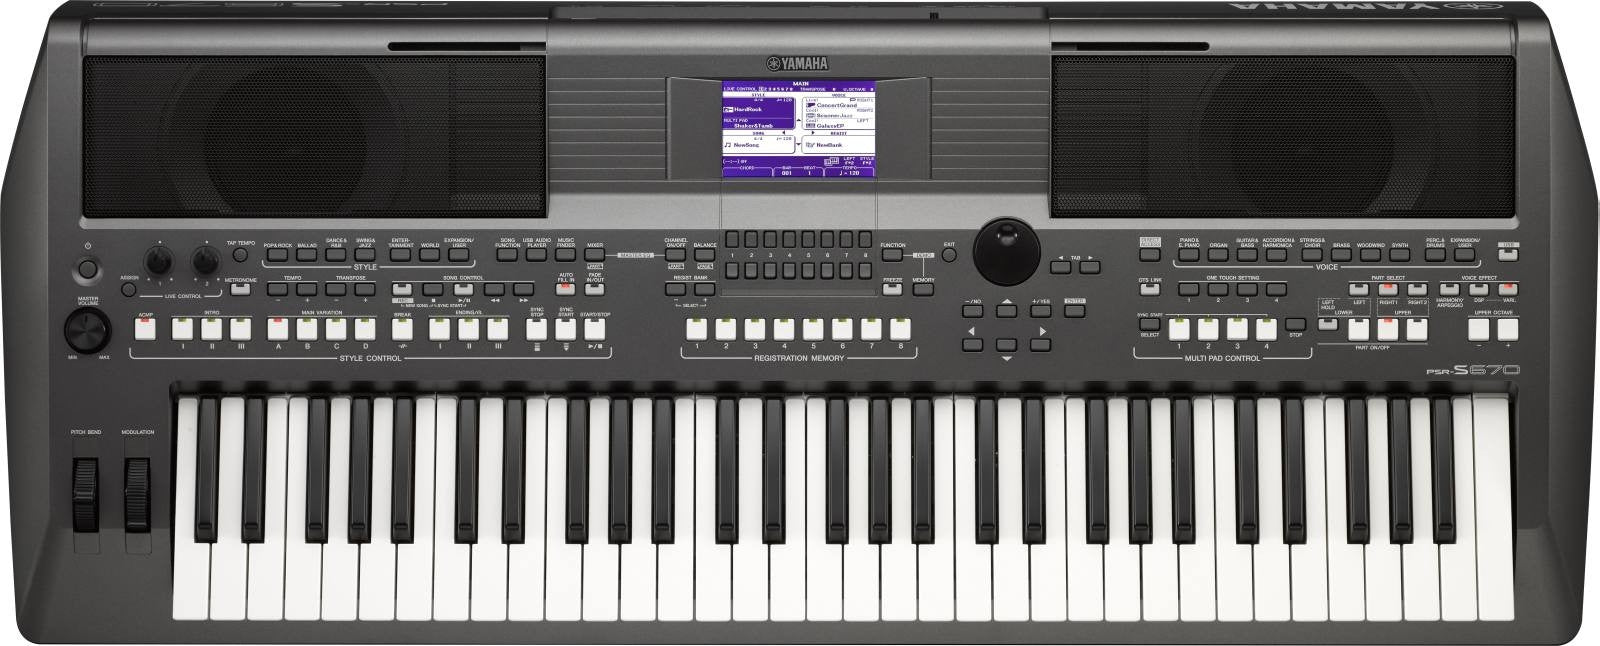 Yamaha Psr S670 61 Key Arranger Workstation S970